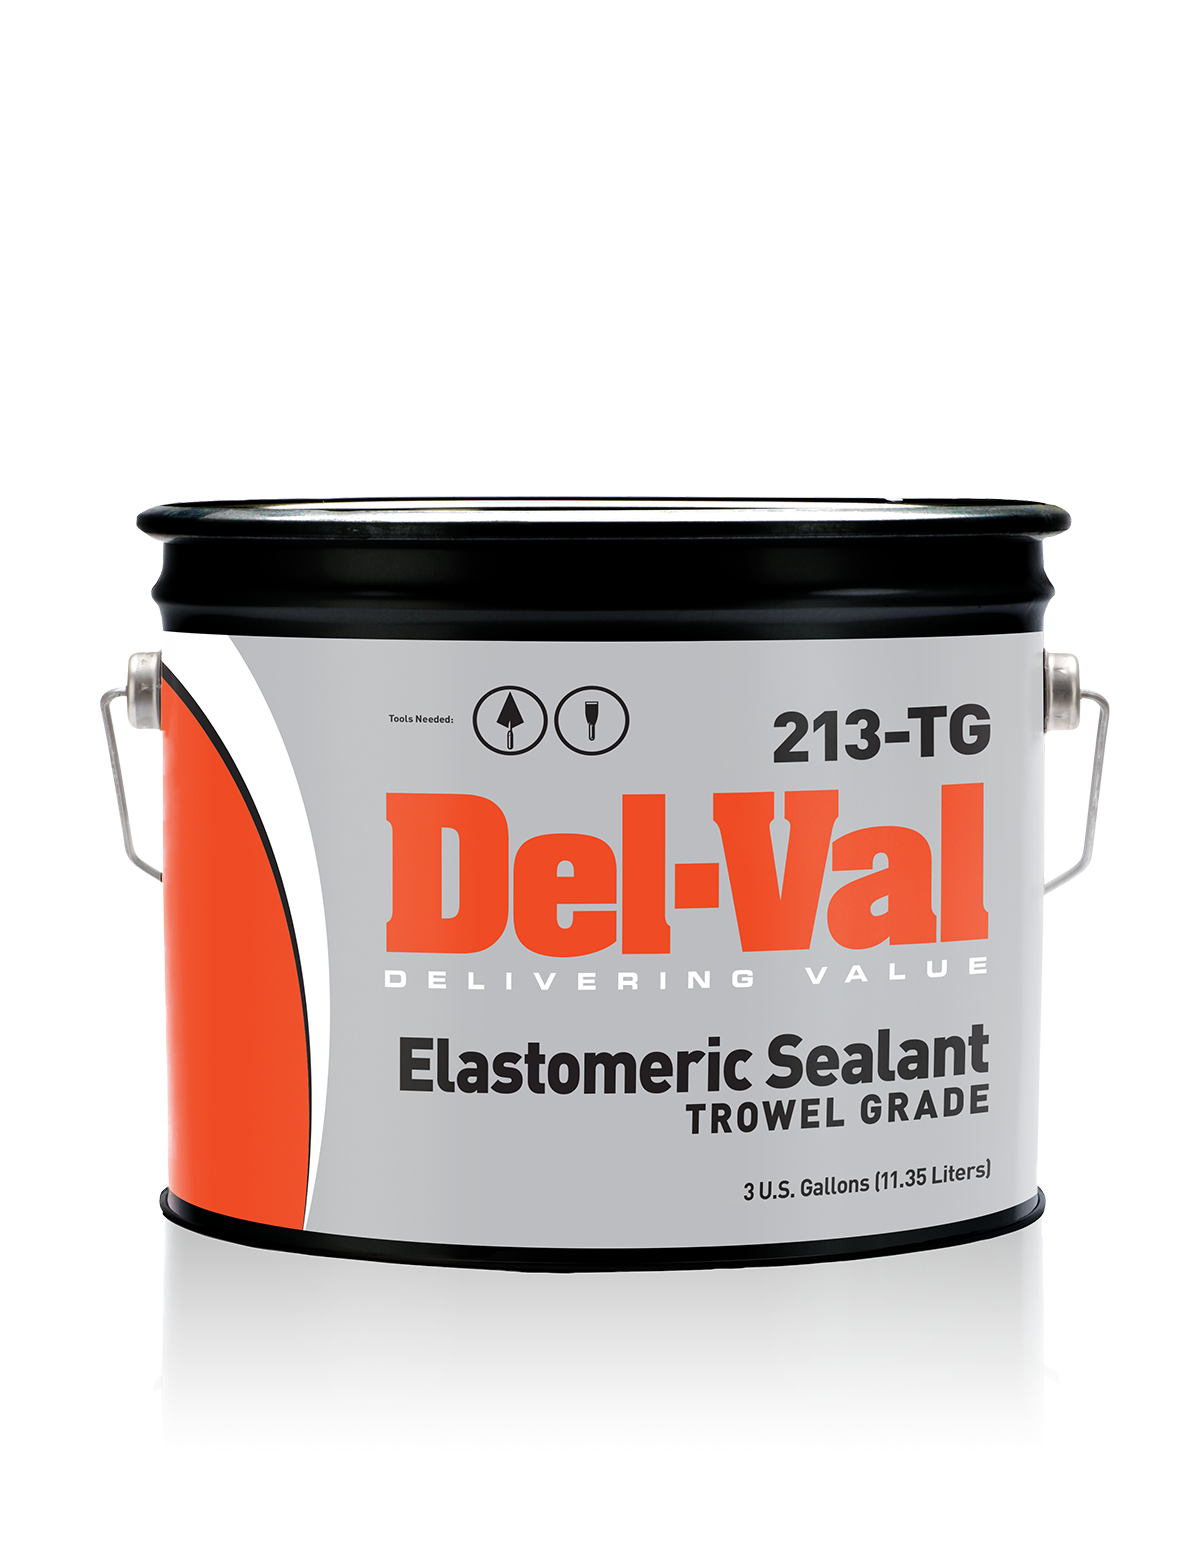 Del Val 213 Elastomeric Sealant Trowel Grade Contains A Blend Of Sbs Rubbers With Solvent Based Asphalts And Reinforcing Fibers Del Sealant Trowel The Unit